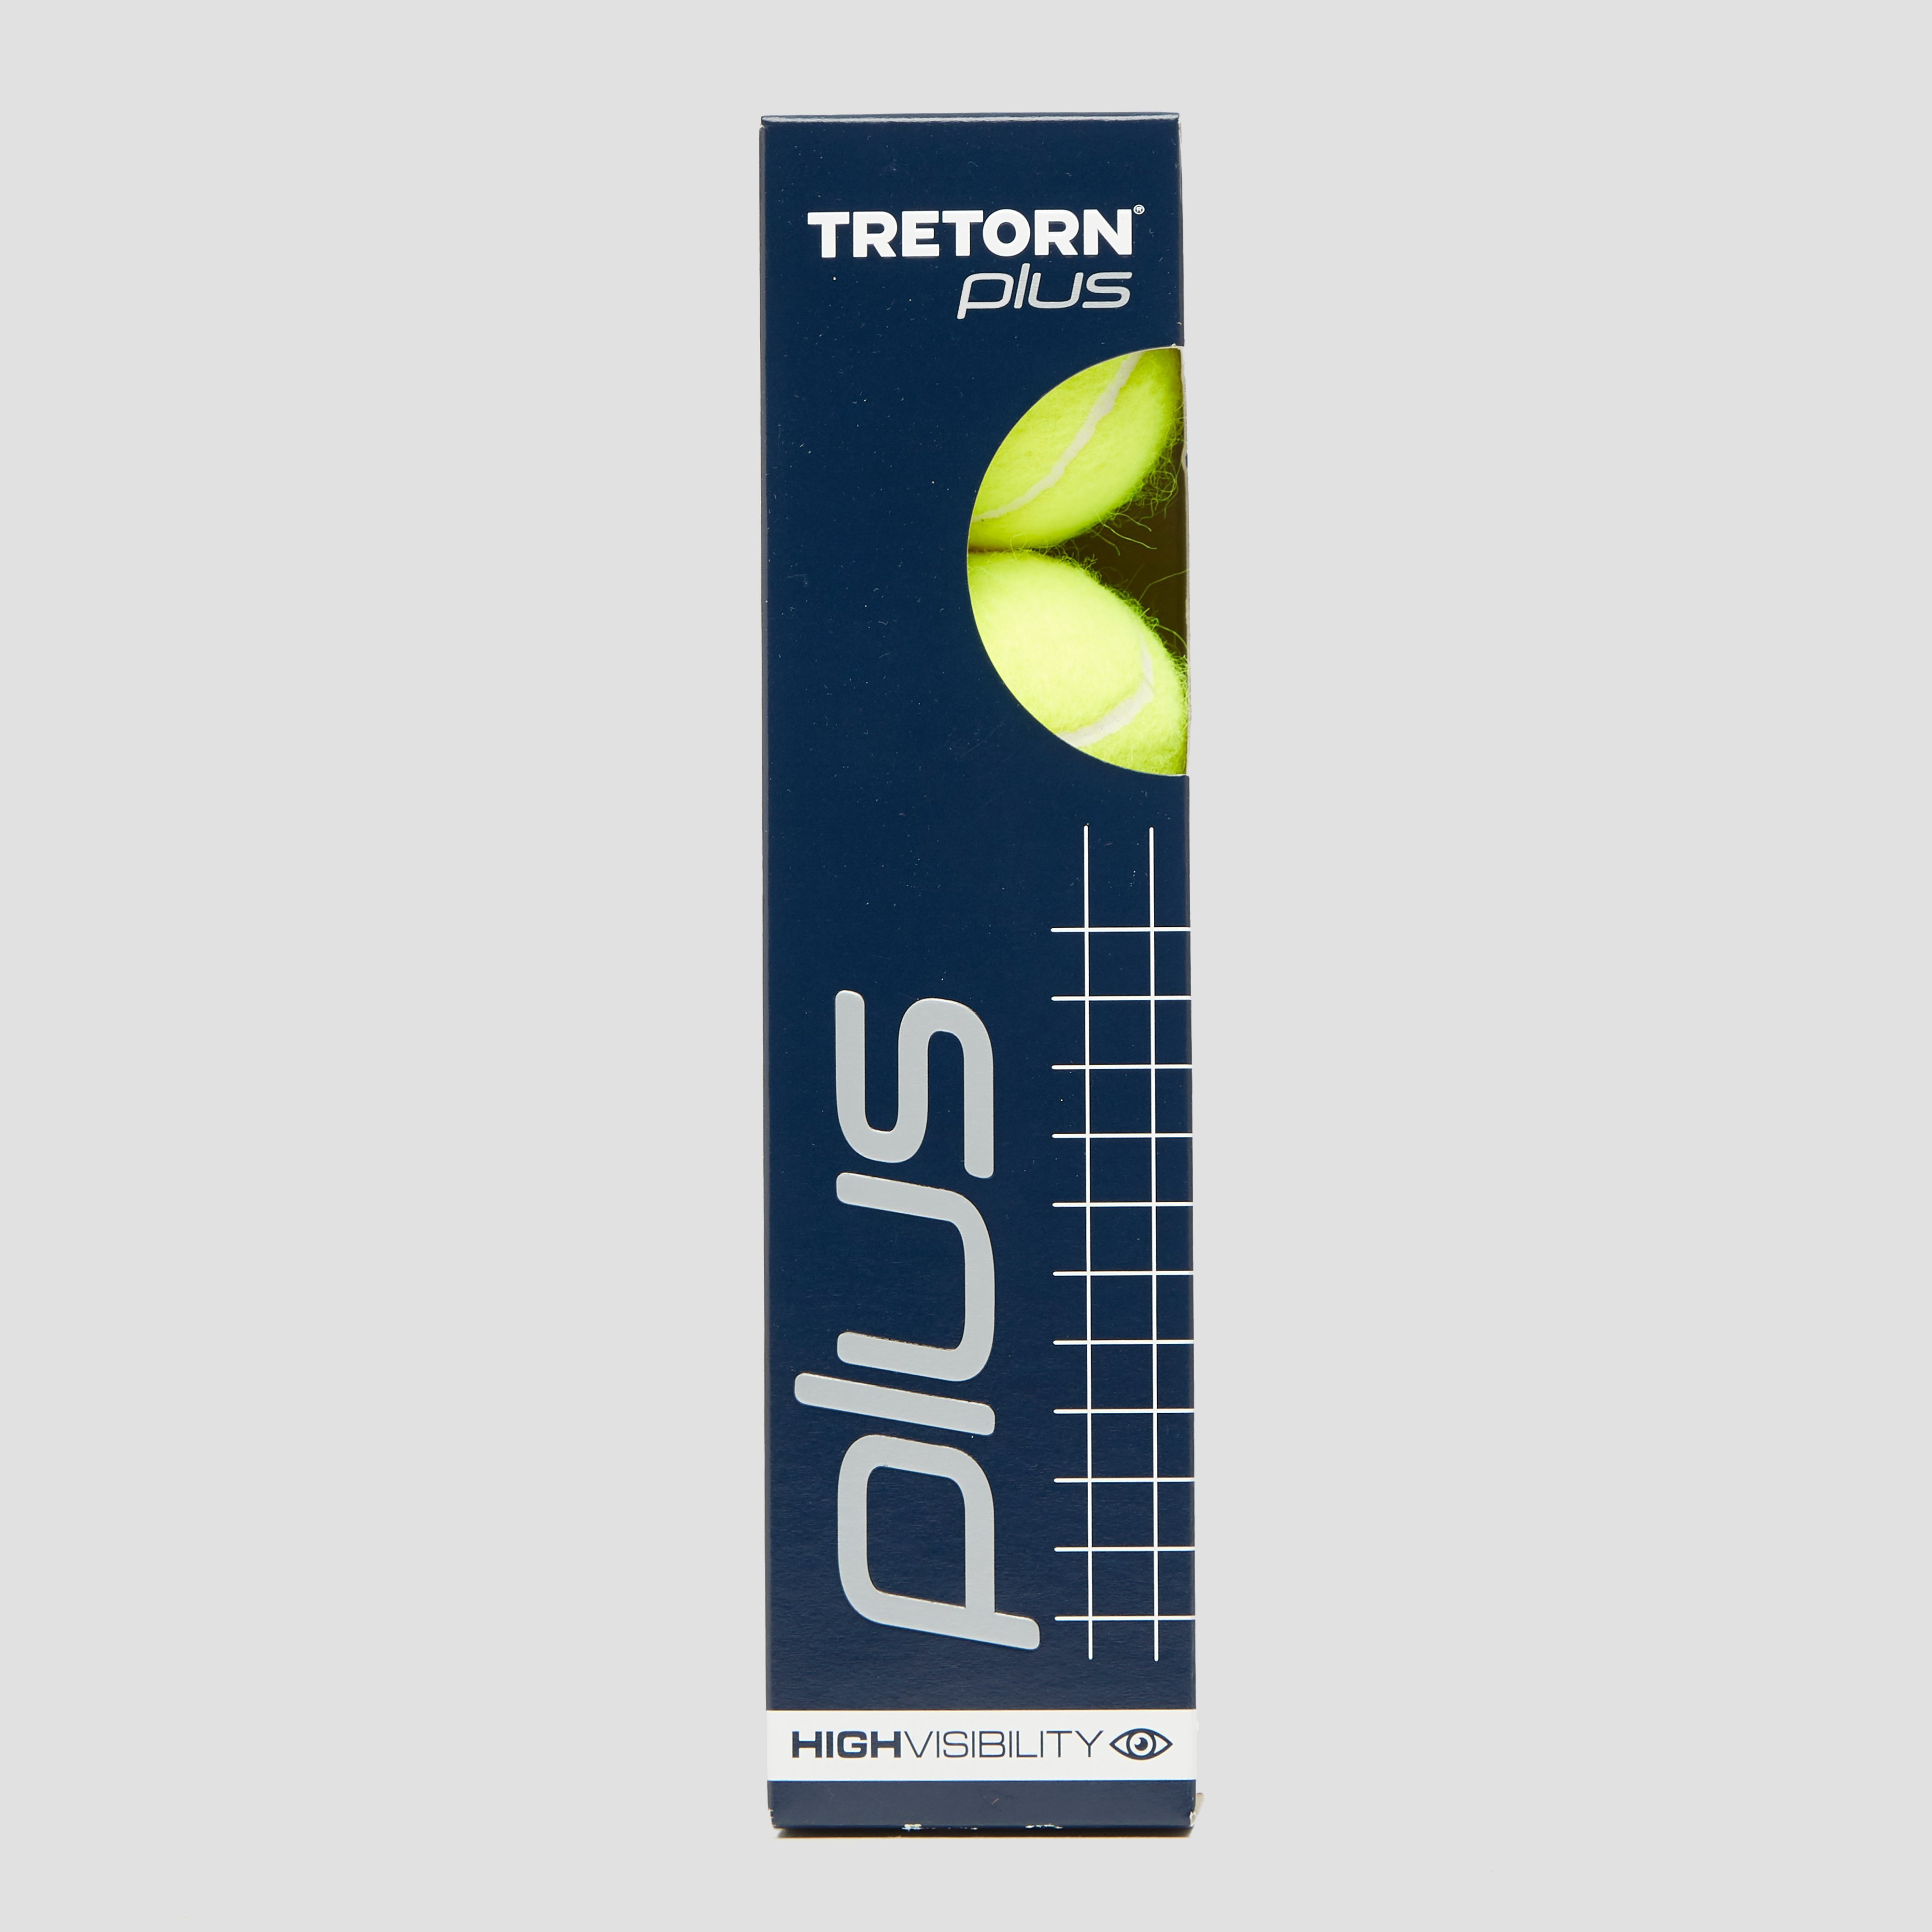 TRETORN PLUS 4-PACK TENNISBALLEN